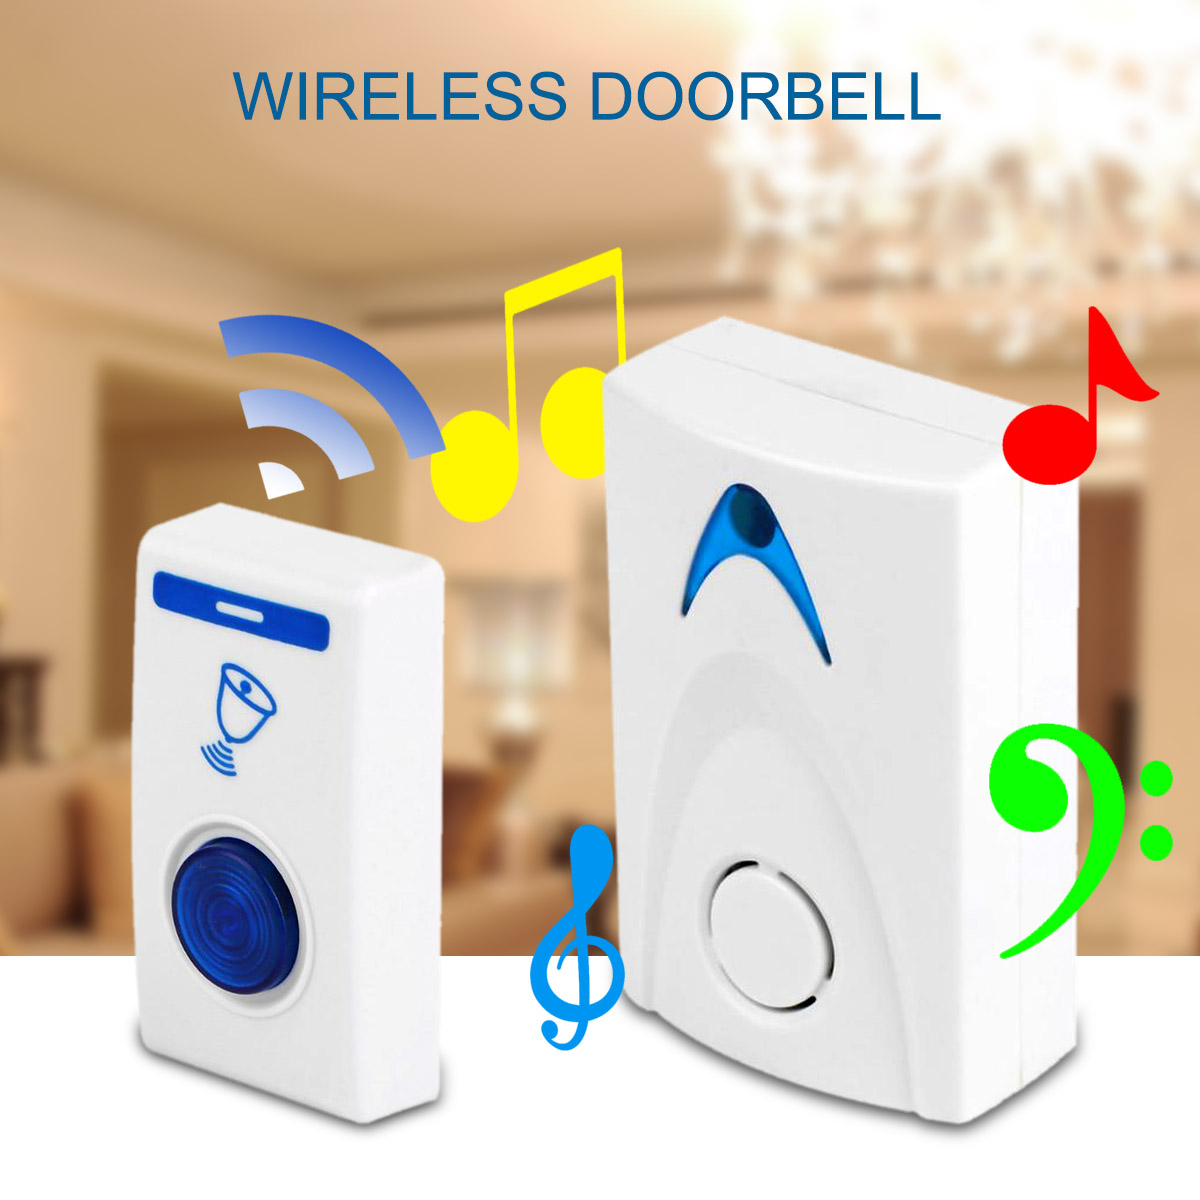 DSHA LED Wireless Chime Door Bell Doorbell & Wireles Remote control 32 Tune Songs (Color: White) wireless doorbell door bell remote control white 32 tunes songs new